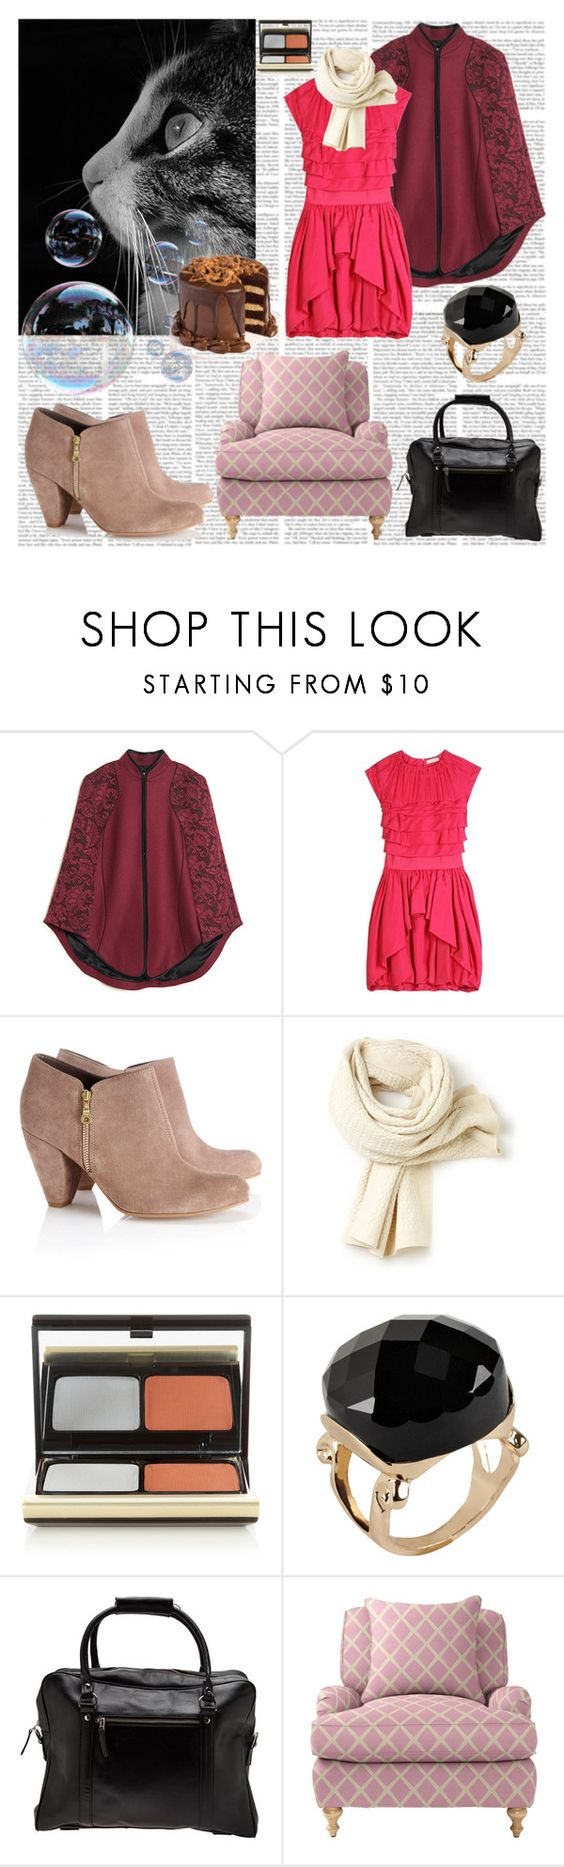 """""""Relaxing Piano Music..."""" by black-wings ❤ liked on Polyvore featuring Jason Wu, Nina Ricci, Wallis, Lacoste, Kevyn Aucoin, ALDO, Royal RepubliQ, Serena & Lily, women's clothing and women's fashion"""